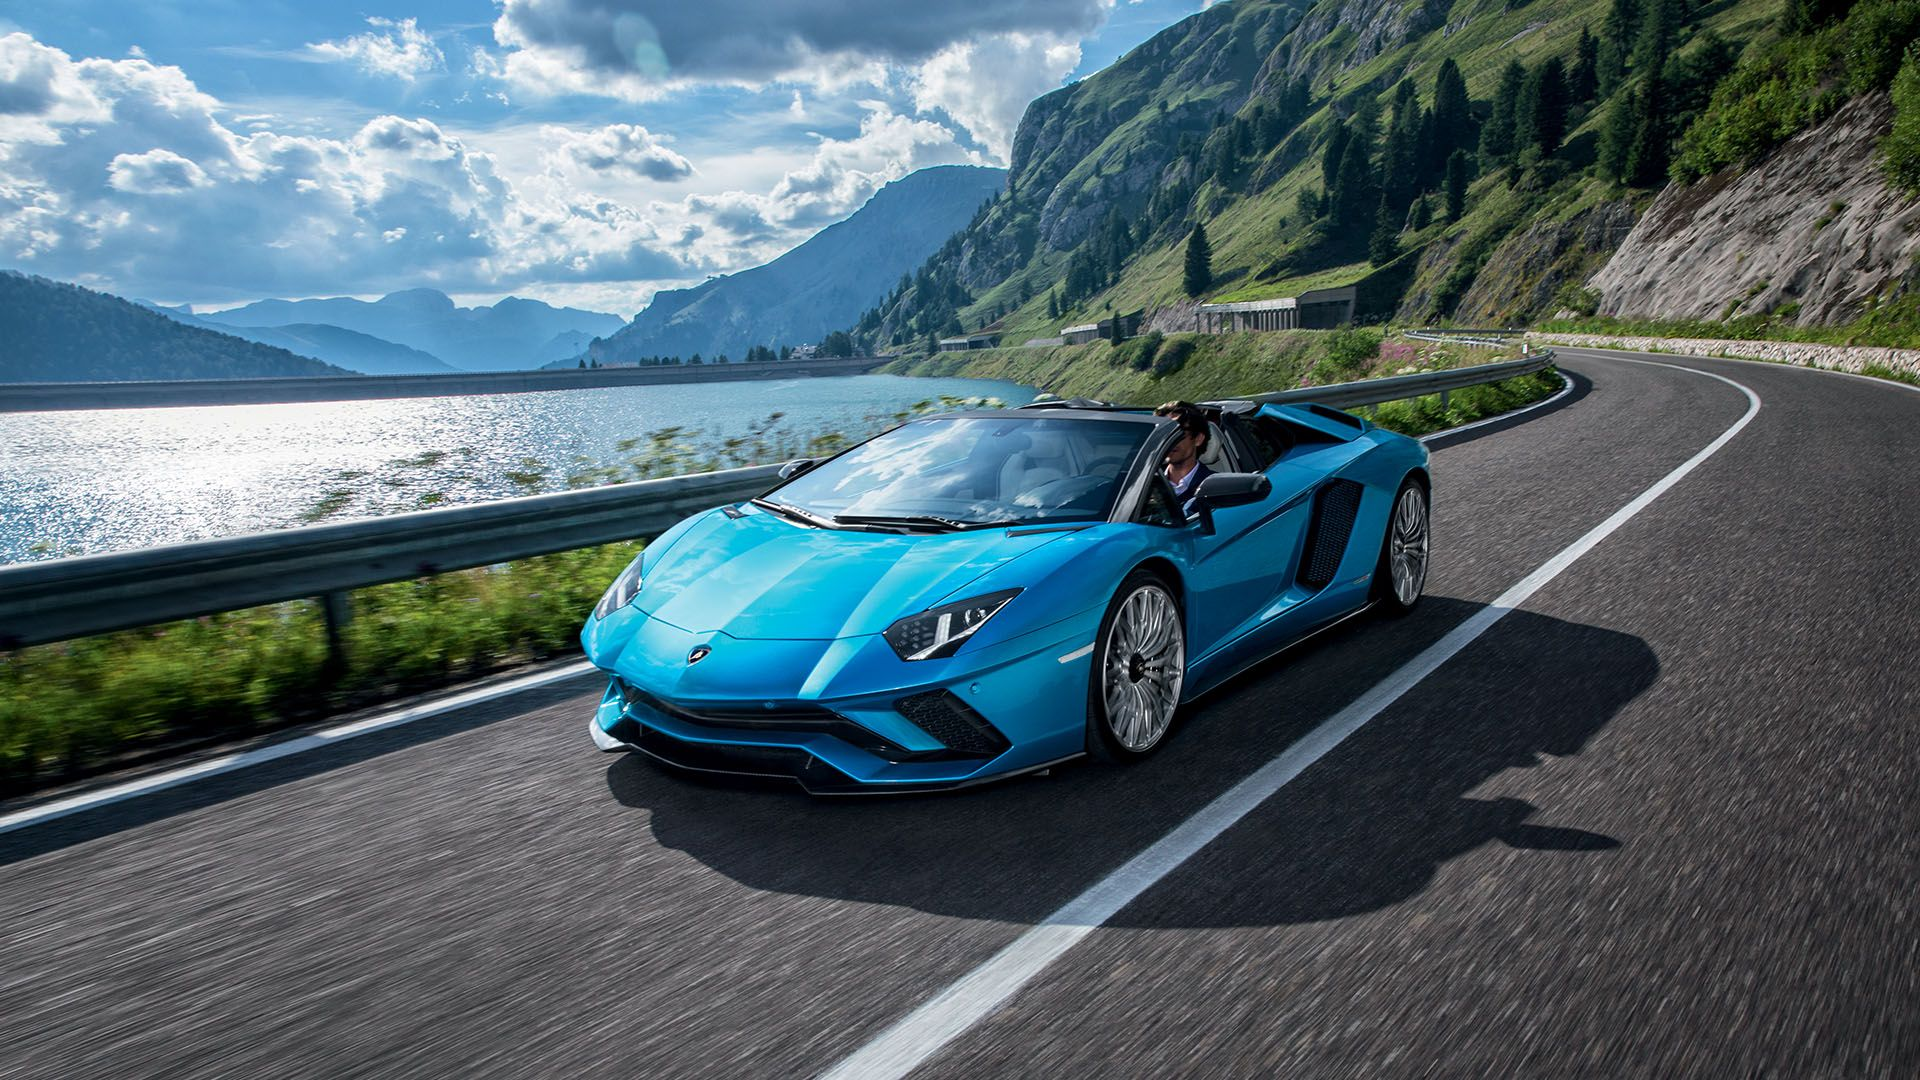 Lamborghini Aventador S Roadster: Technical Specifications, Performance (top  Speed And Acceleration), Design, And Pictures Of The New Lamborghini  Aventador ...